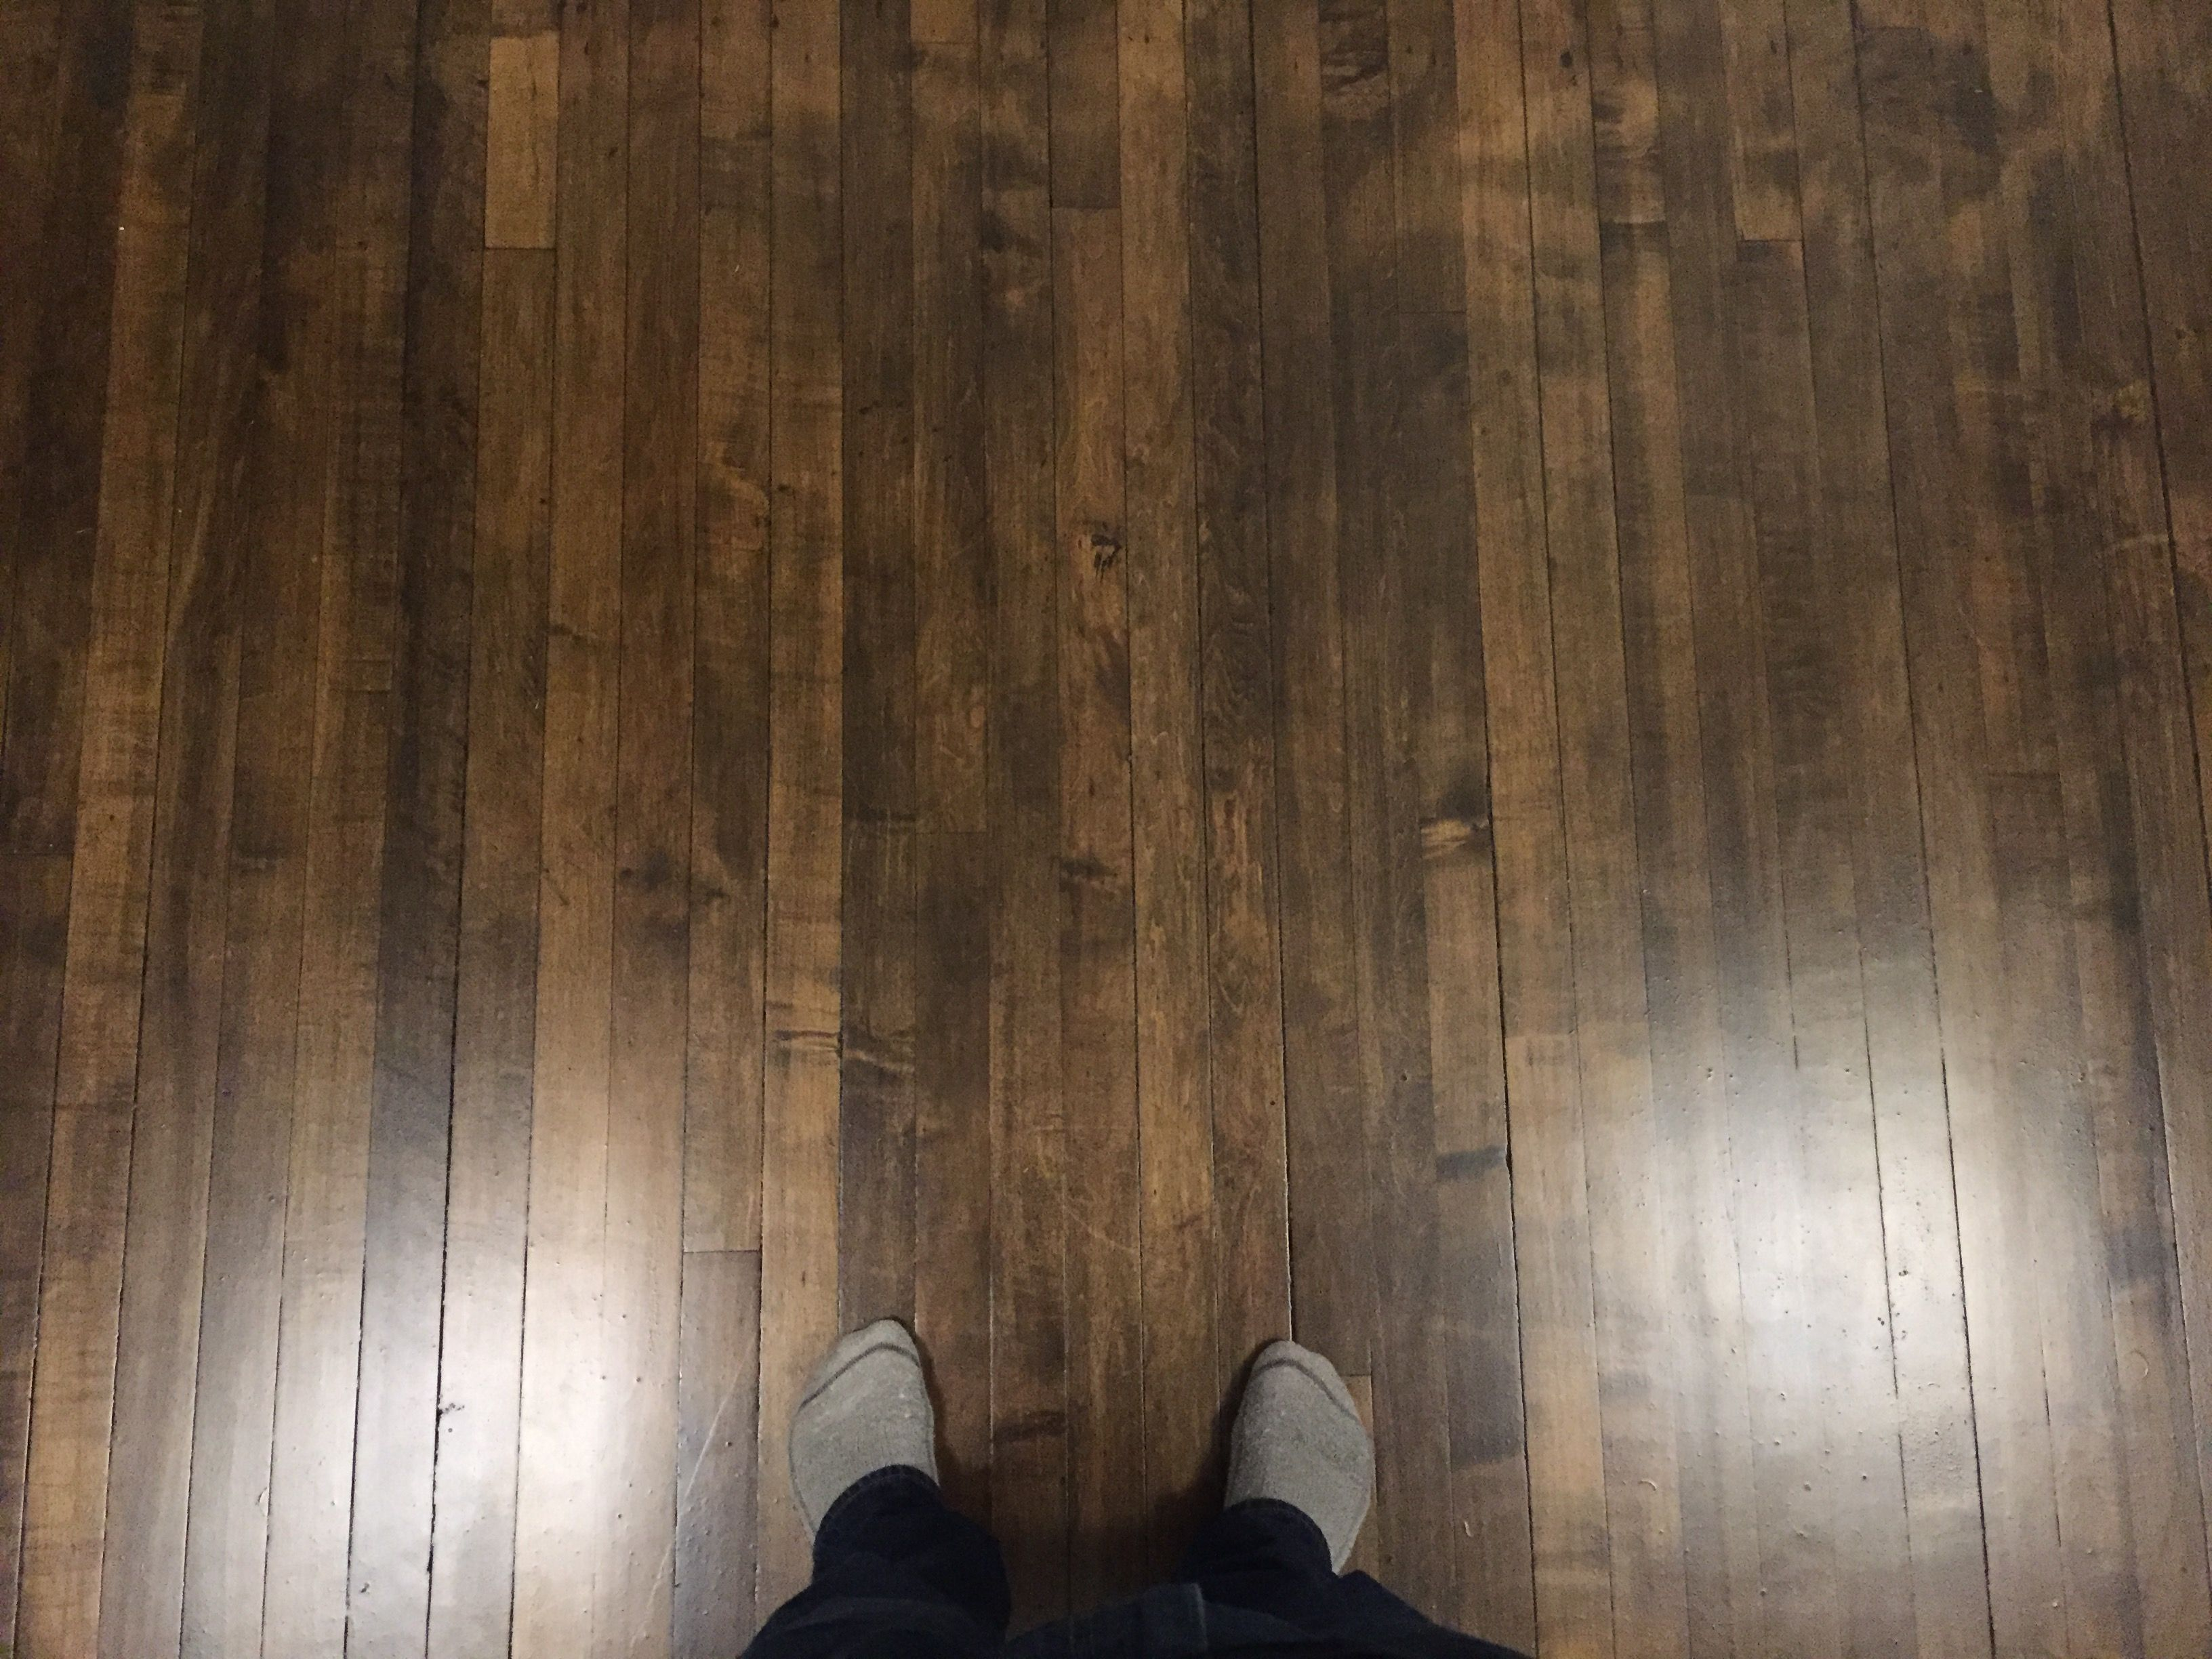 How I Stained My Maple Floors Dark Spoiler Gel Stain Post Maple Floors Maple Wood Flooring Staining Wood Floors